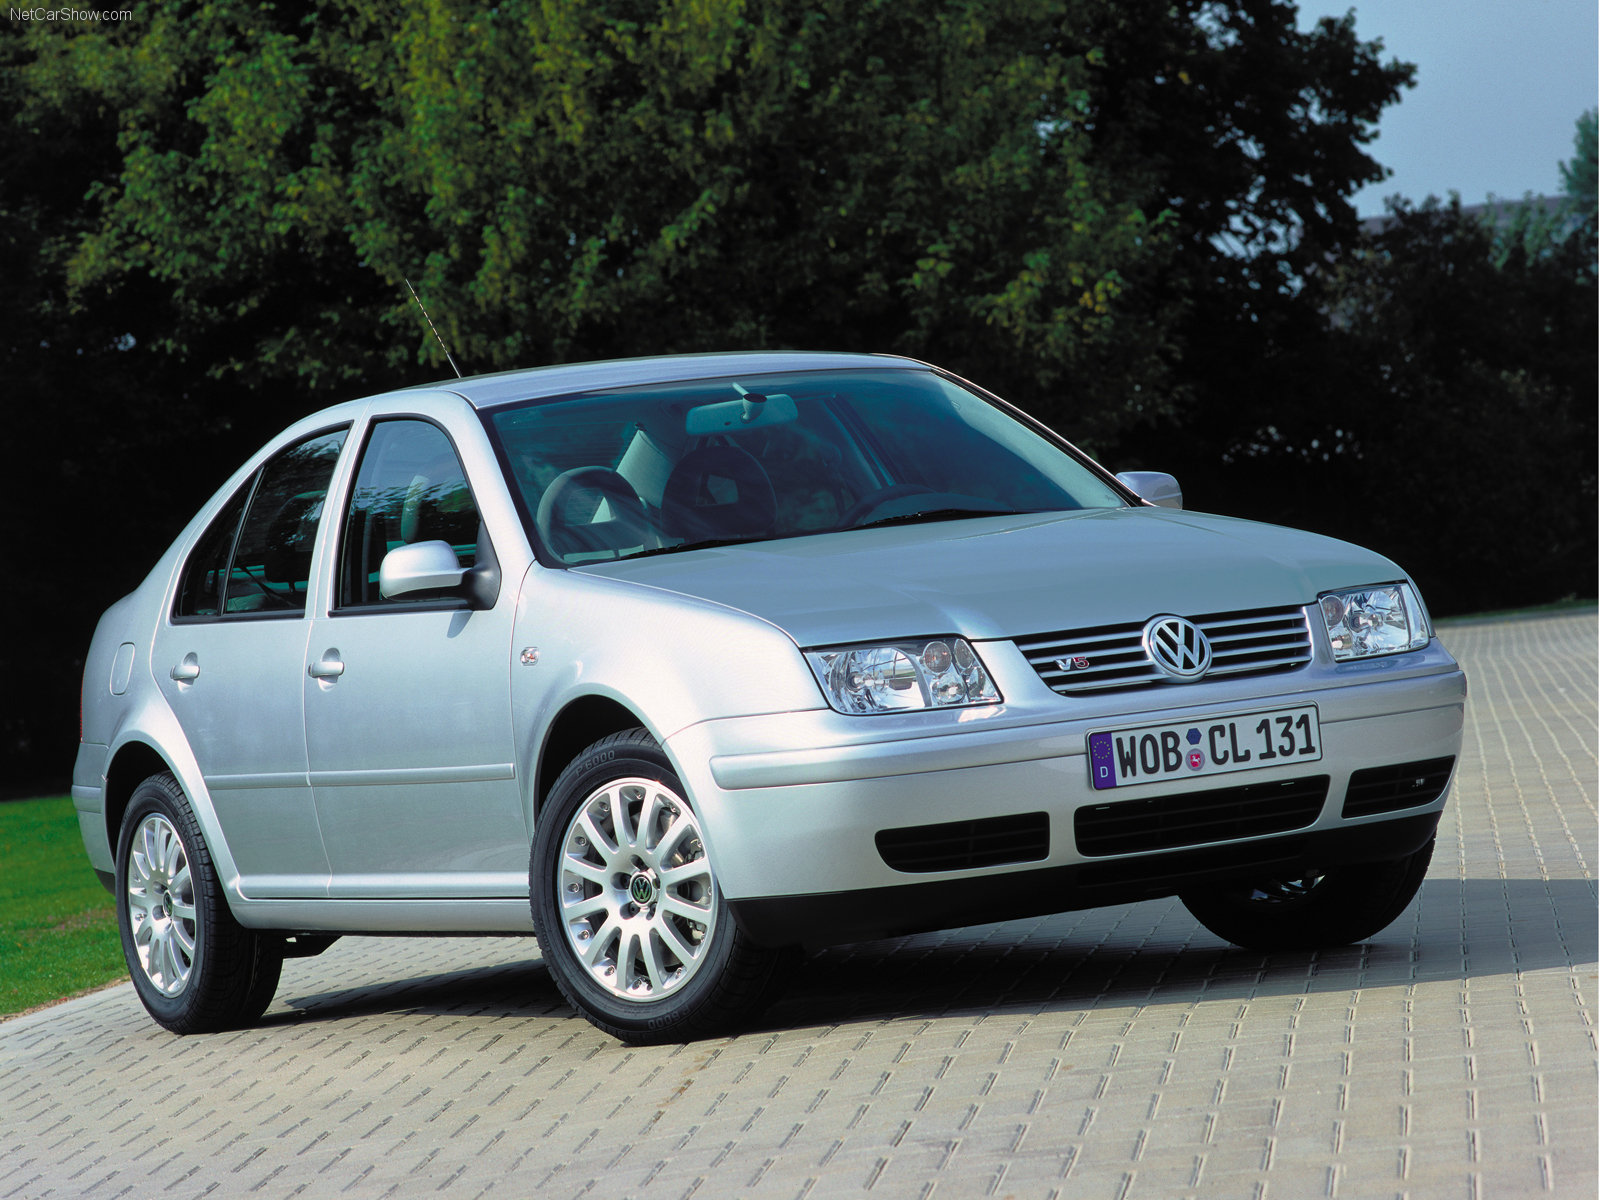 vw jetta transmission parts with Sedan on Sedan also Sedan as well Terex Shift Linkage Diagram besides Golf Mk4 90 1 9 8v Alh as well Audi V8 Timing Chain Service Real Story.